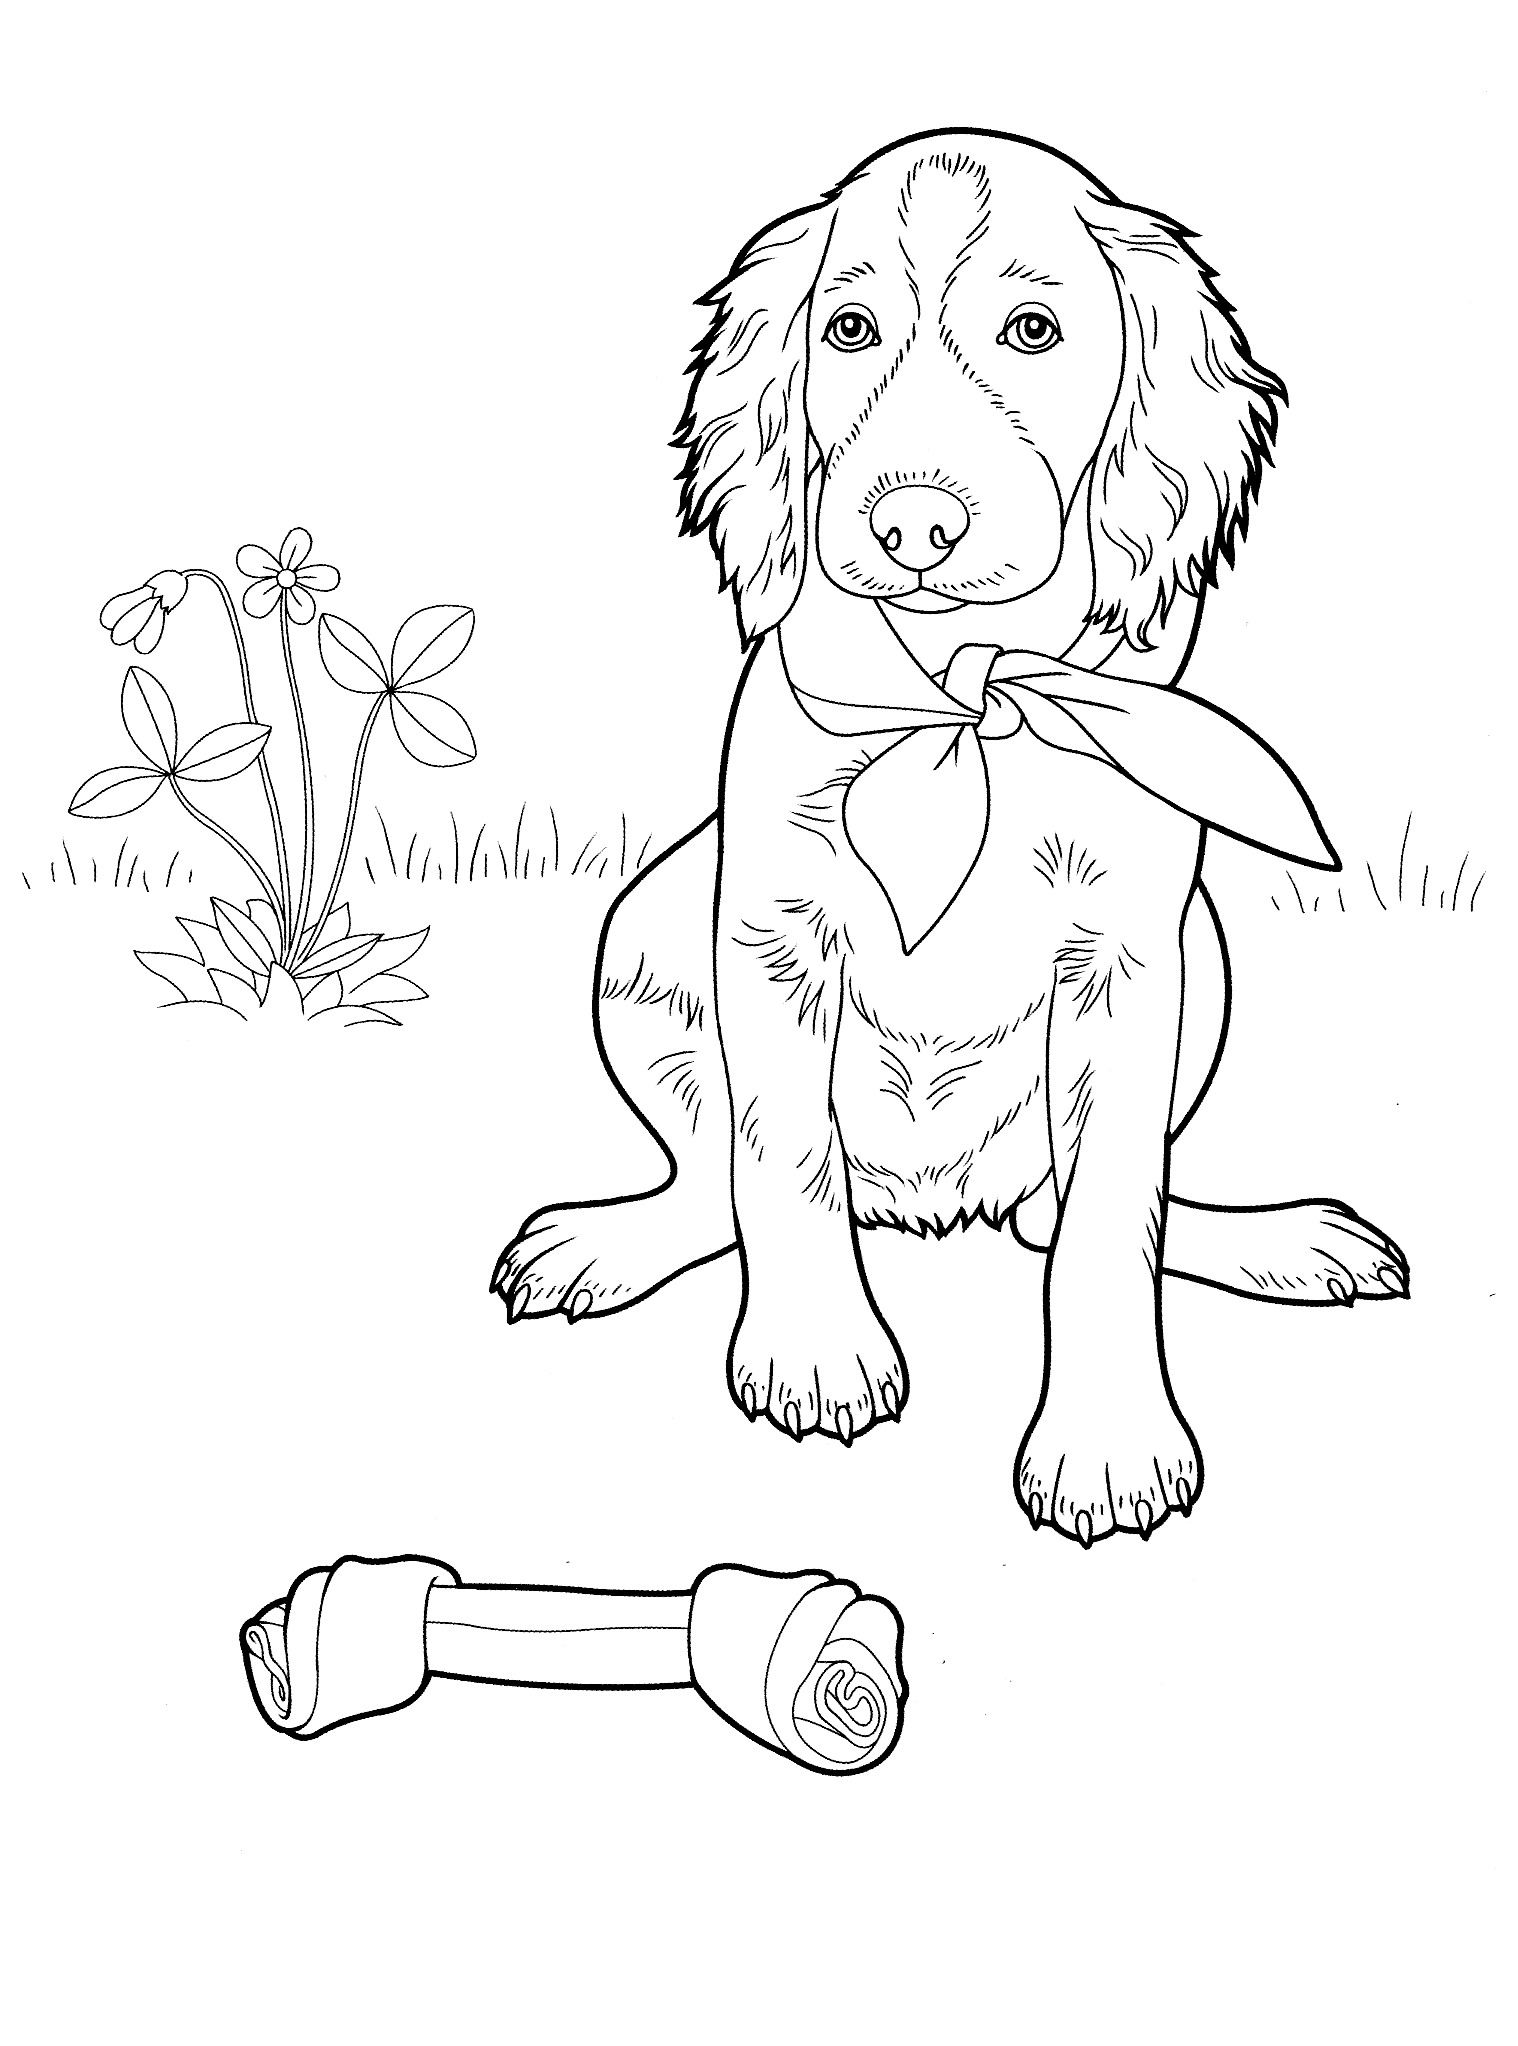 Dog Coloring Pages 17 Teenagers Coloring Pages Puppy Coloring Pages Dog Coloring Page Horse Coloring Pages